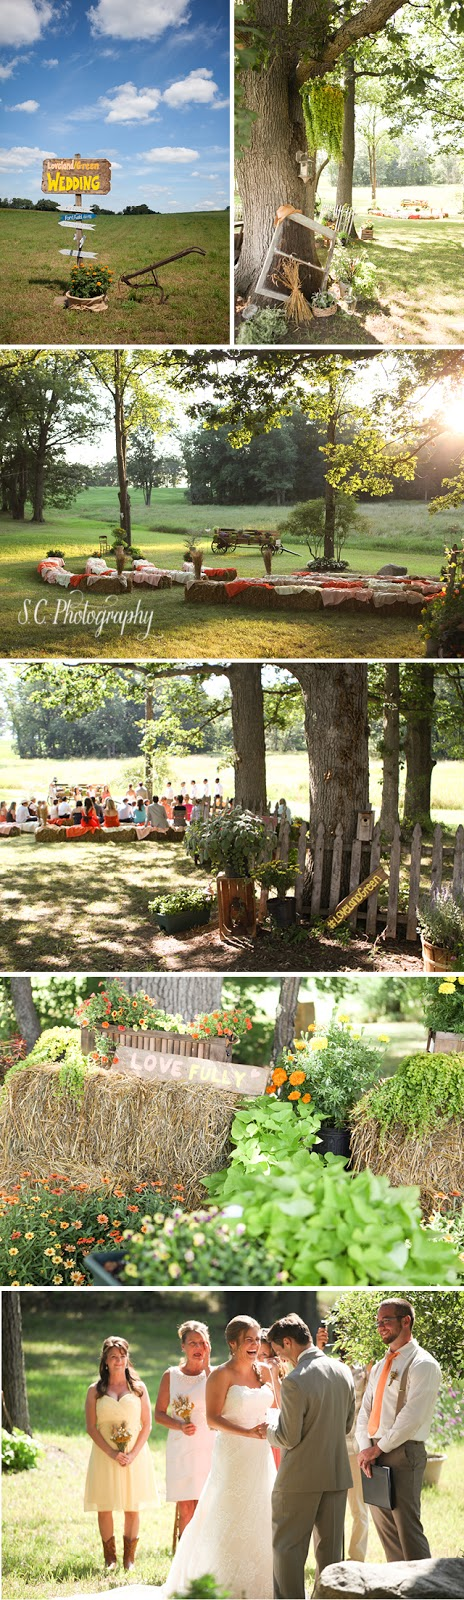 Country wedding, hay, DIY, crafts, pinterest, S.C. Photography